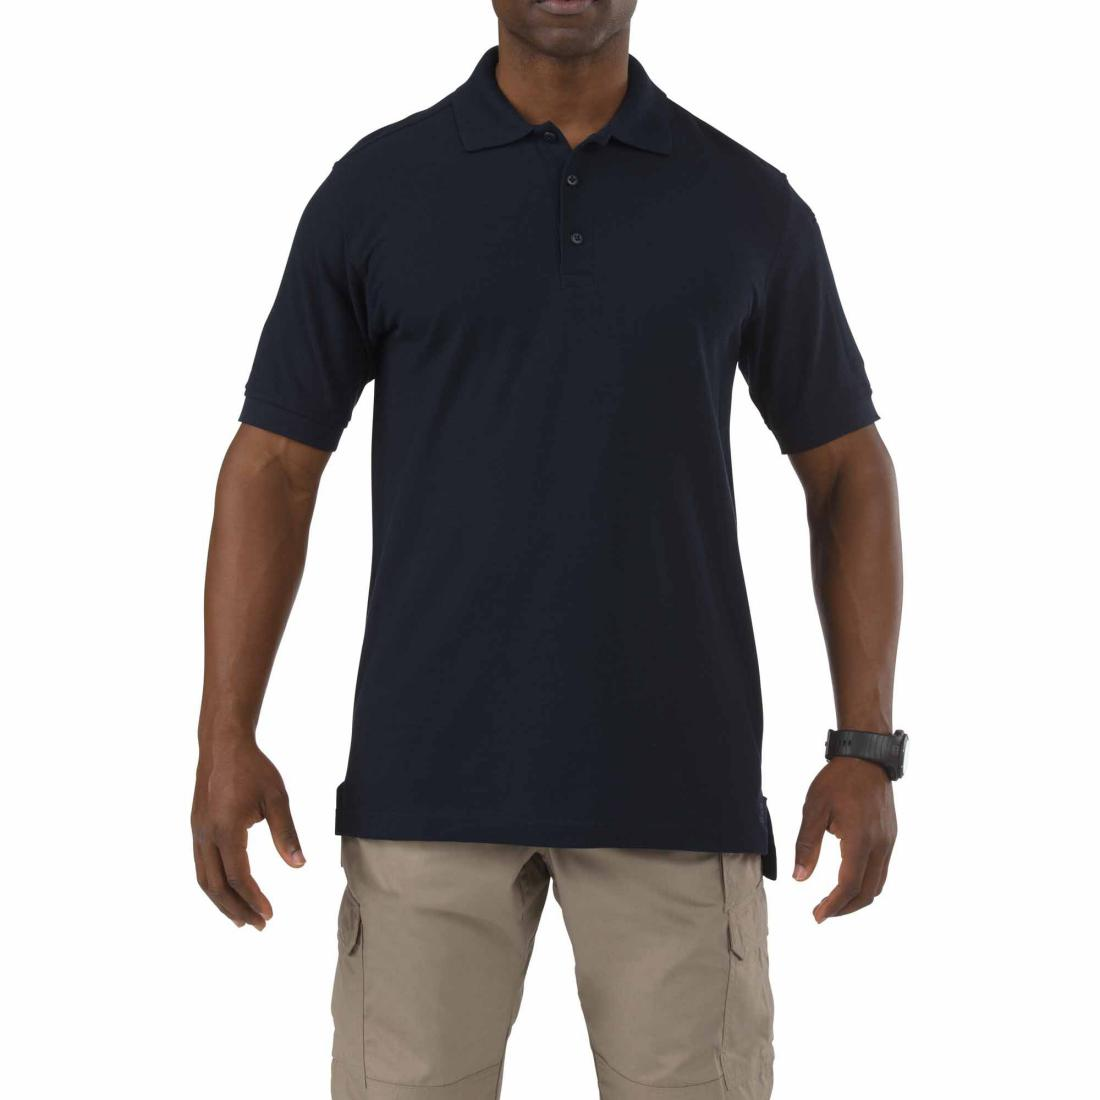 Rich snippet previewHide snippet 5.11 Tactical 41180 Men Utility Short Sleeve Polo